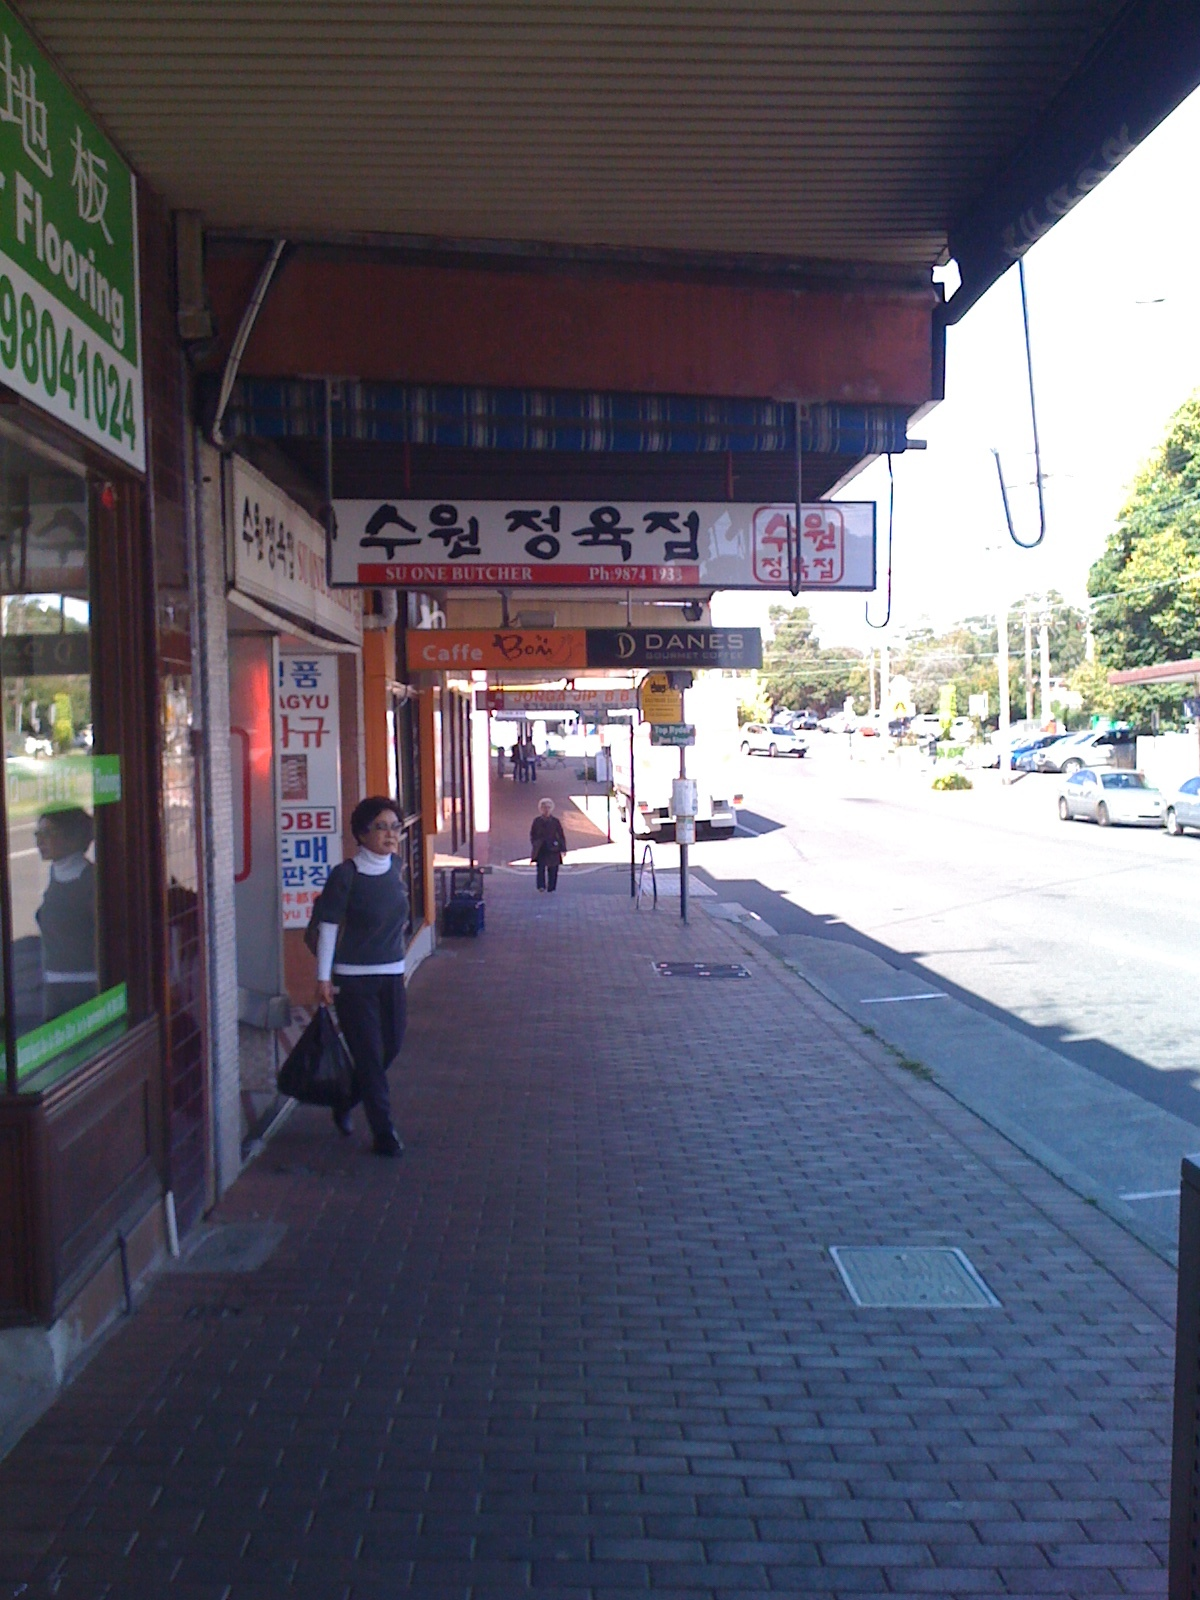 Suone Butcher, with the famous Jonga Jip BBQ restaurant further down the street, opposite Eastwood Station.